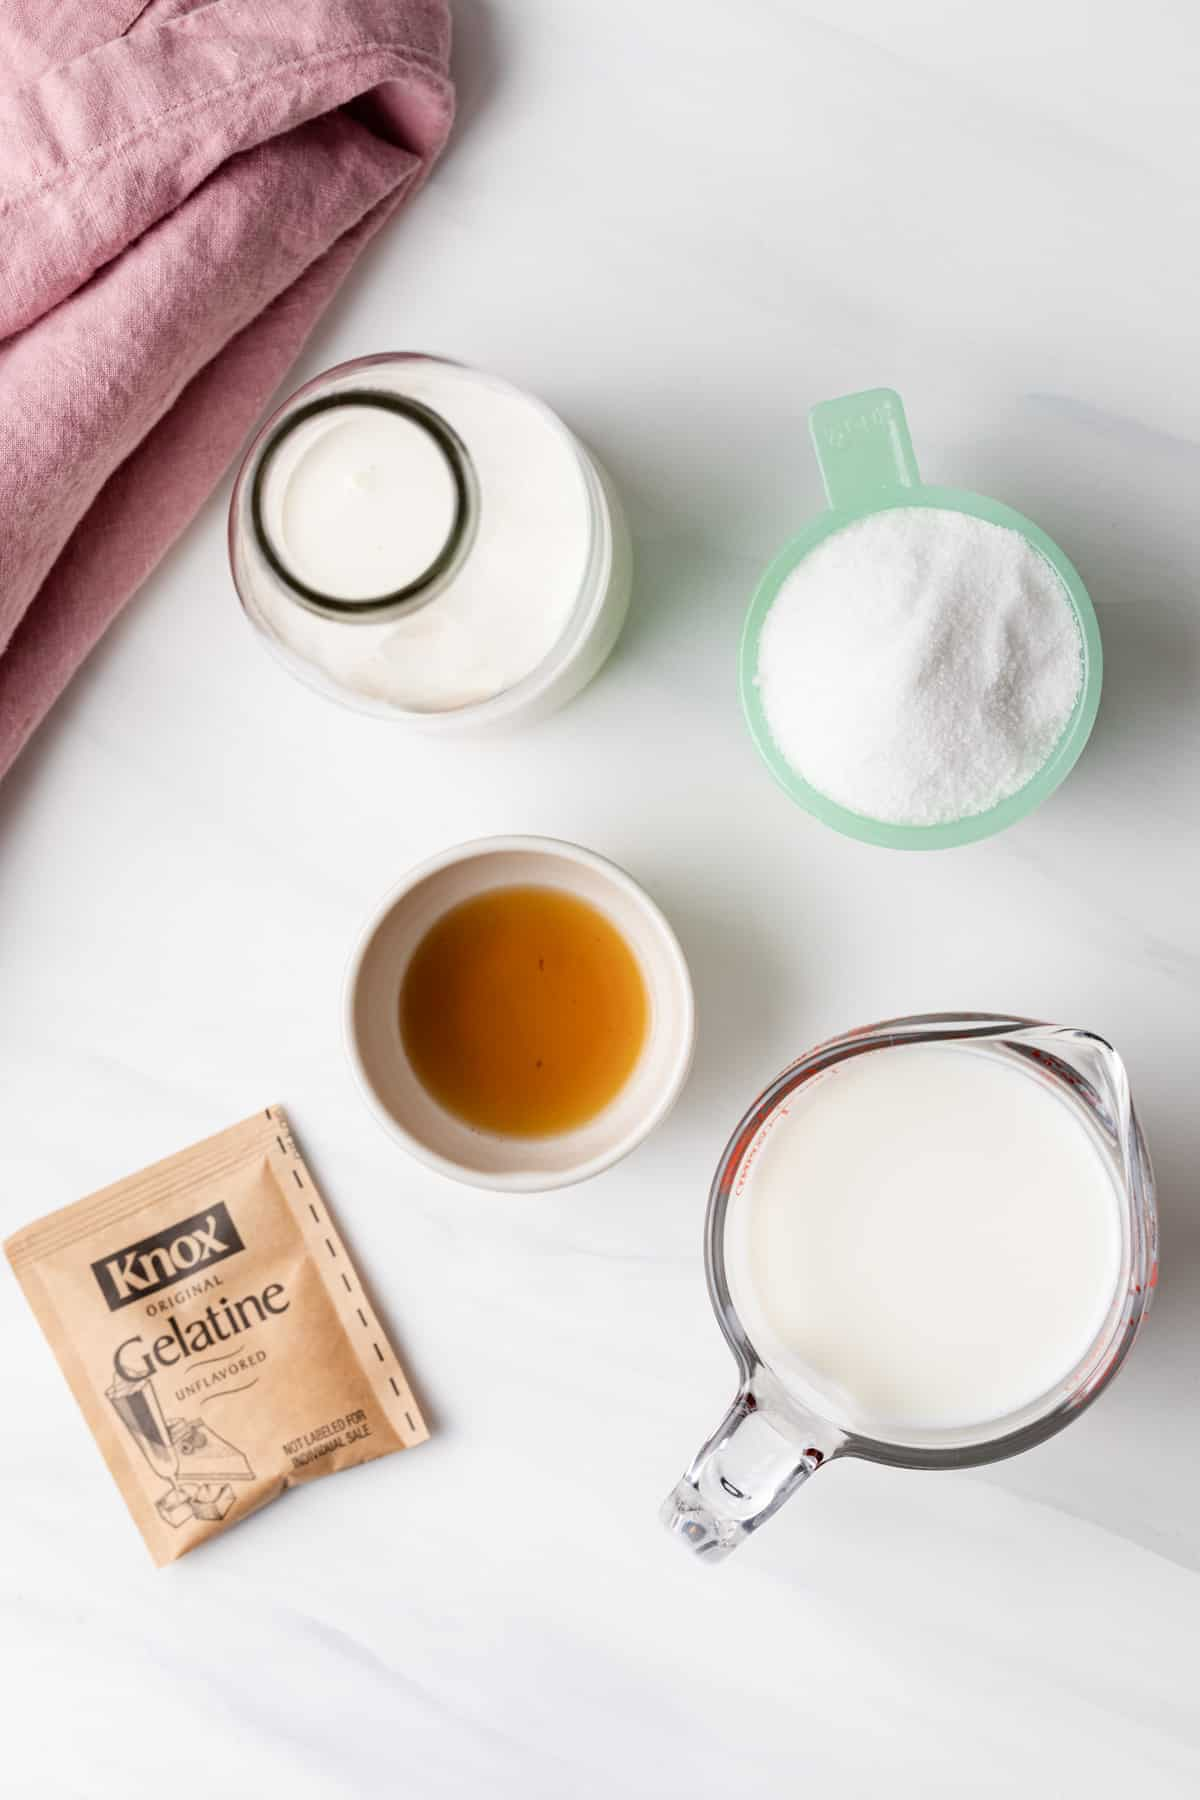 Milk in a glass measuring cup, cream in a glass jar, sugar in a jade measuring cup, vanilla in a cream bowl, and a packet of gelatin powder